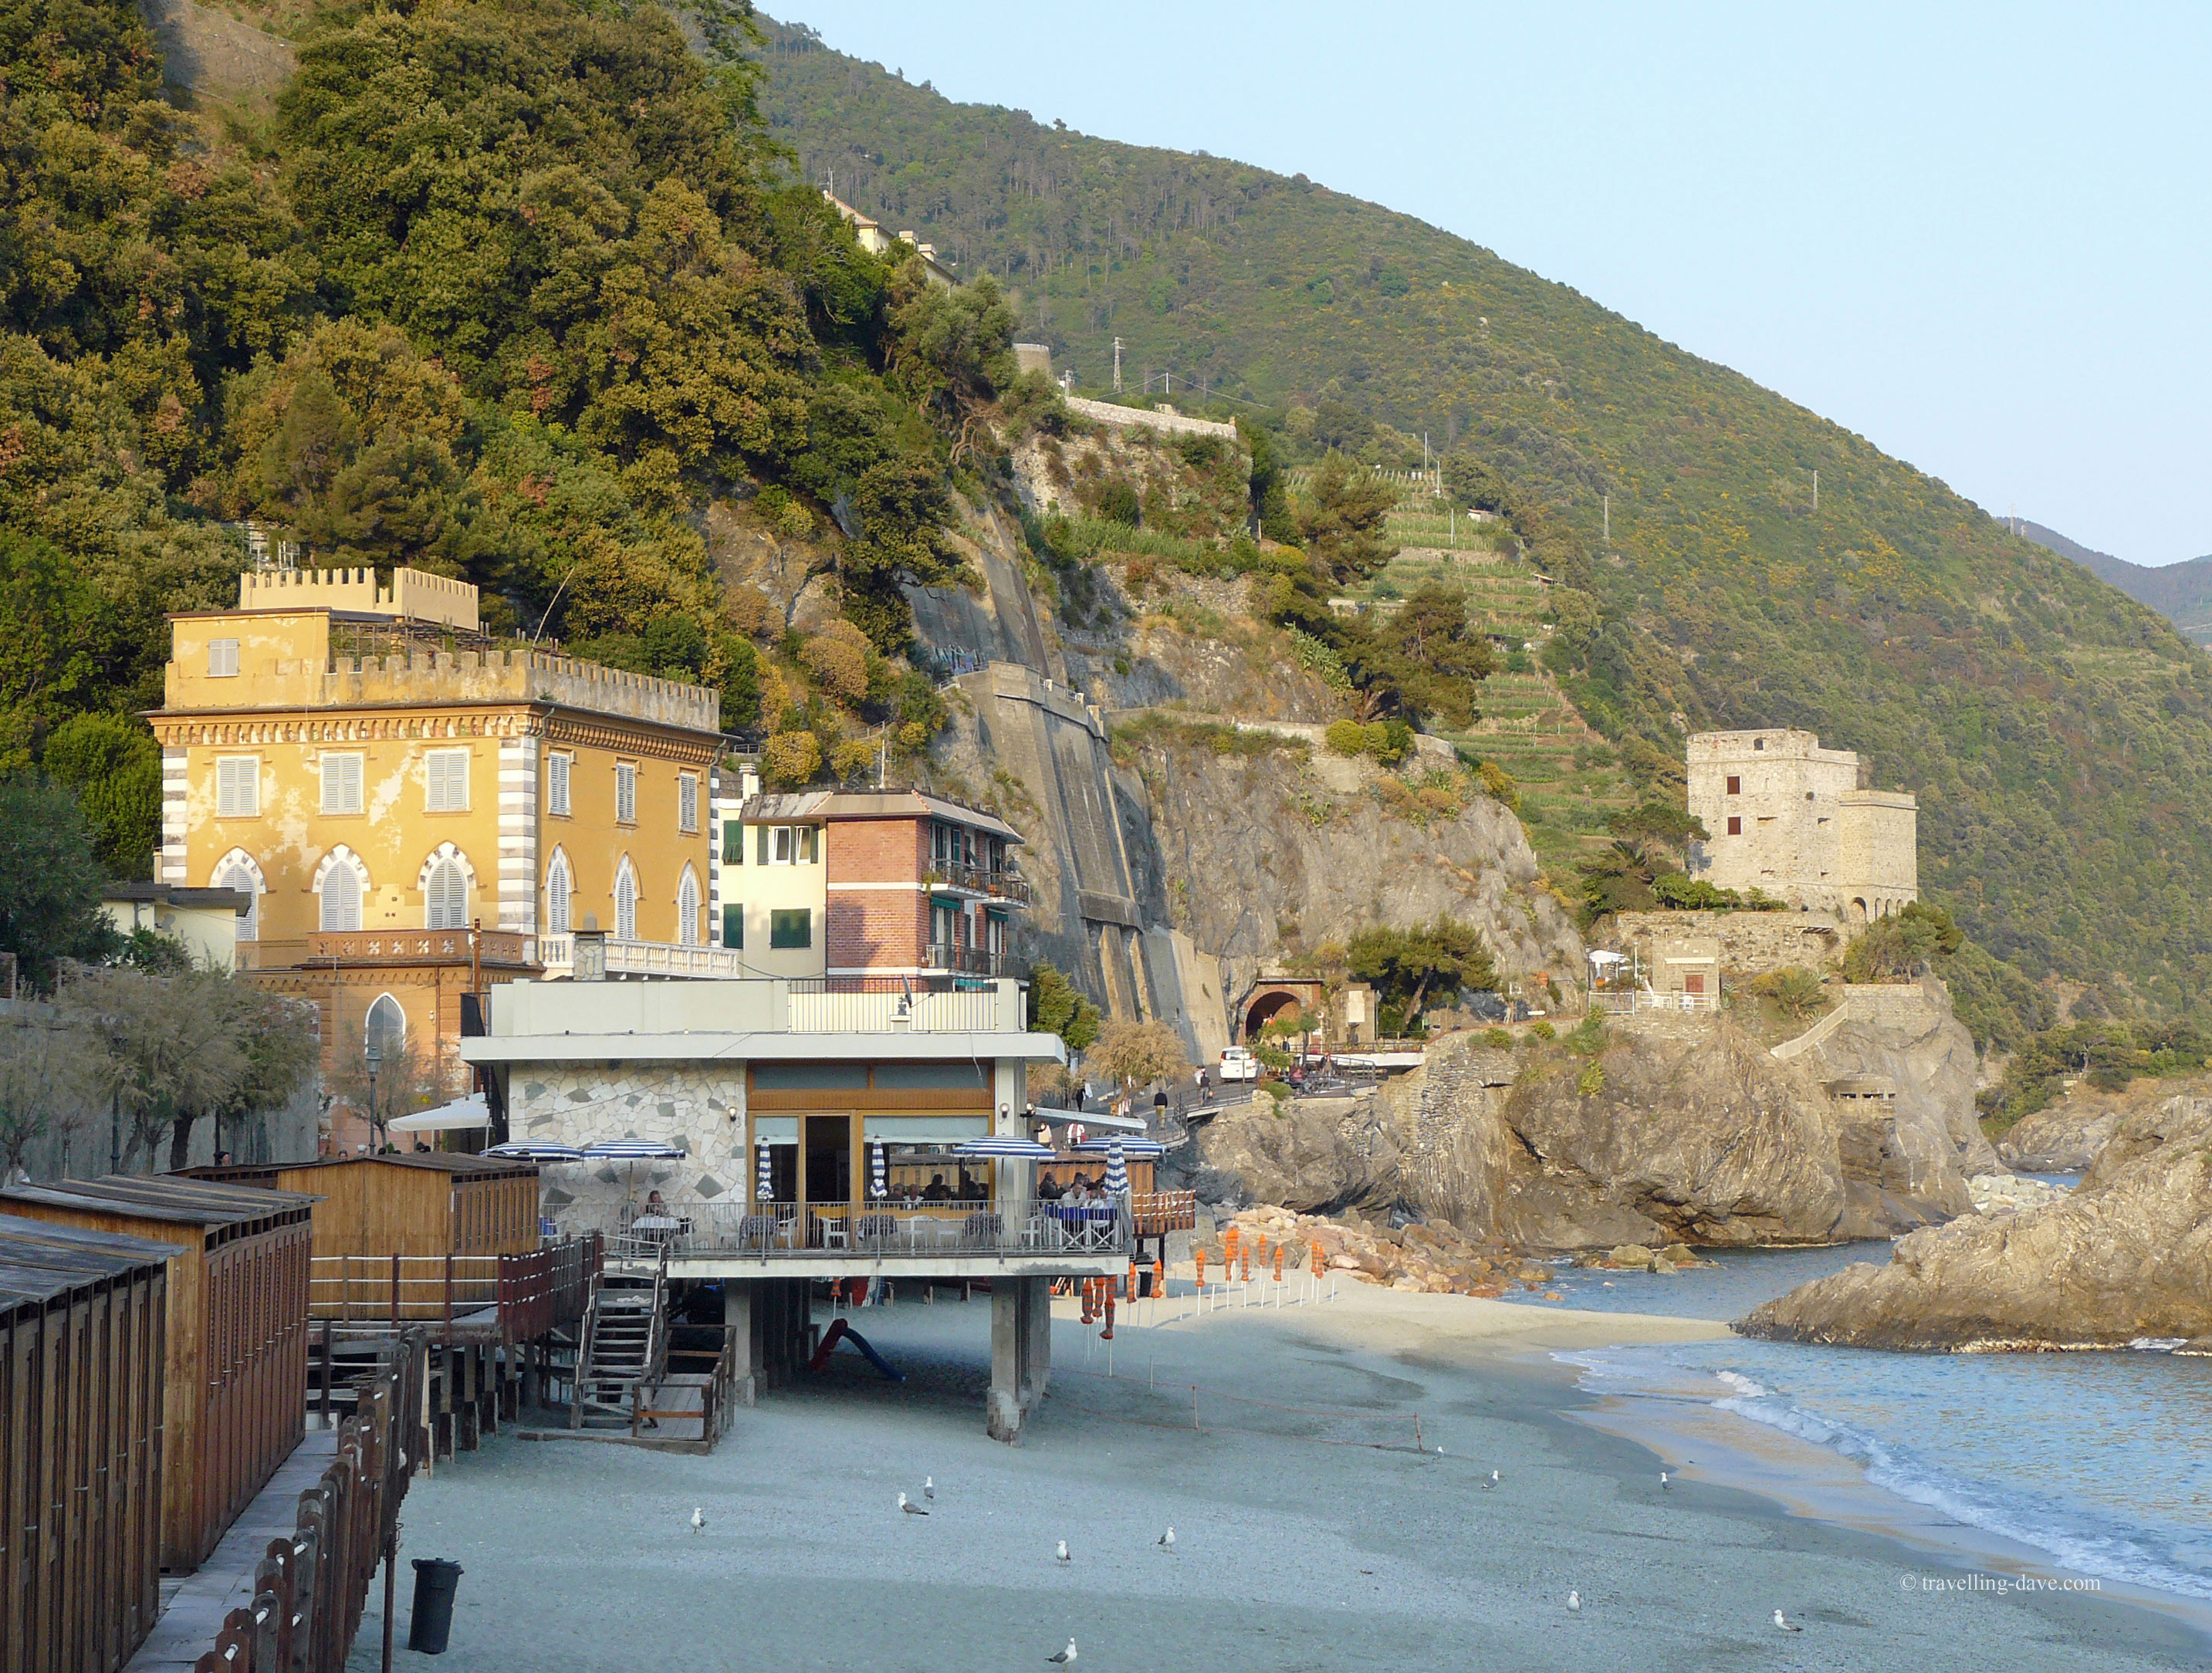 A bar and restaurant on the beach at Monterosso al Mare in Italy